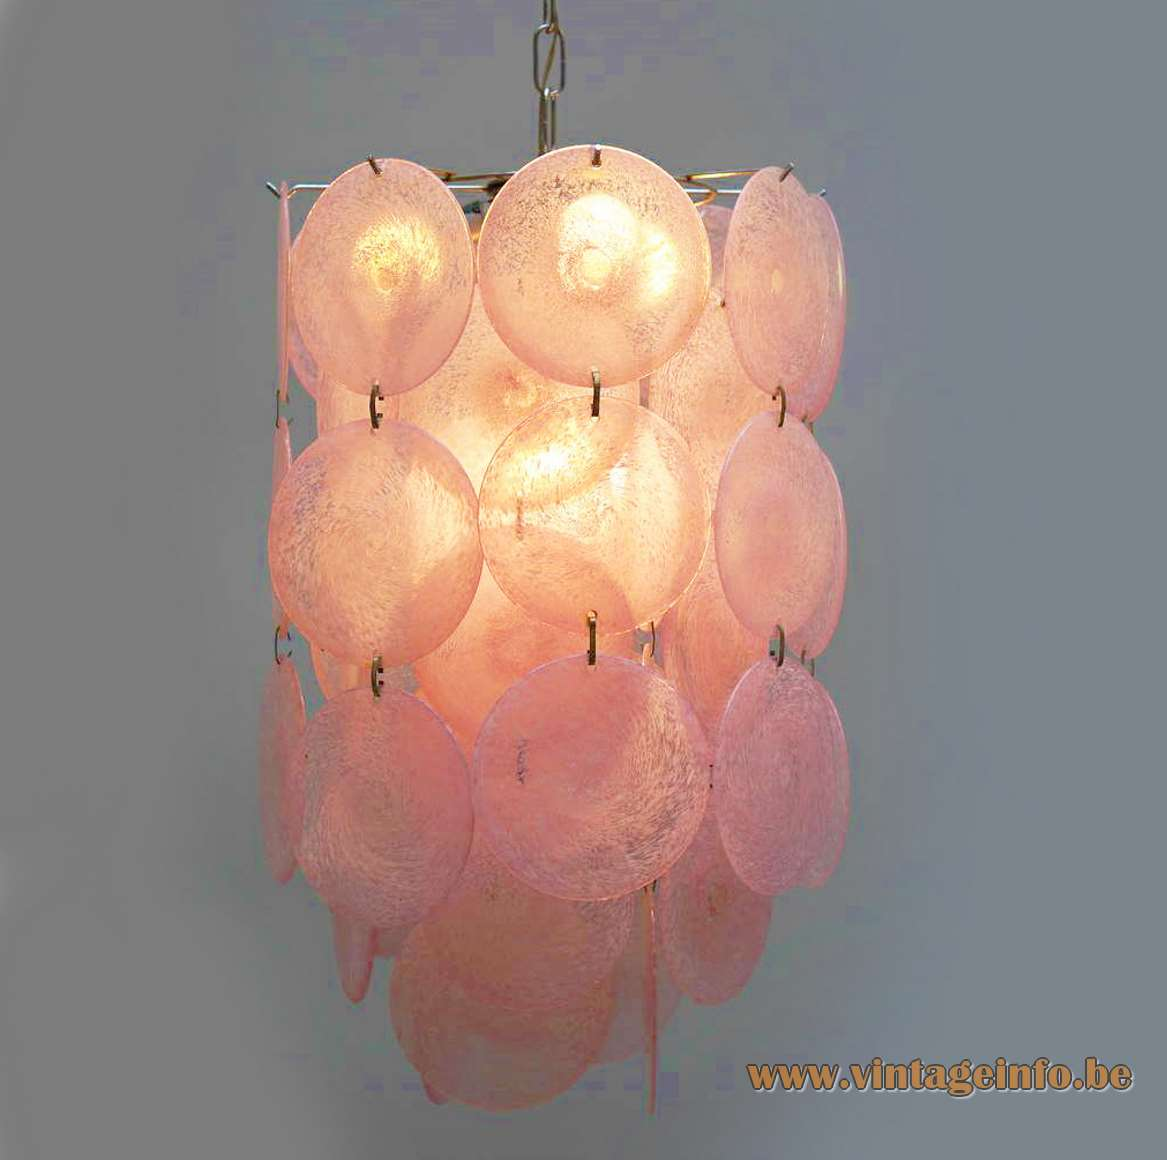 1960s Murano discs chandelier 54 pink glass dishes chrome wire frame AV Mazzega Vistosi 1960s 1970s